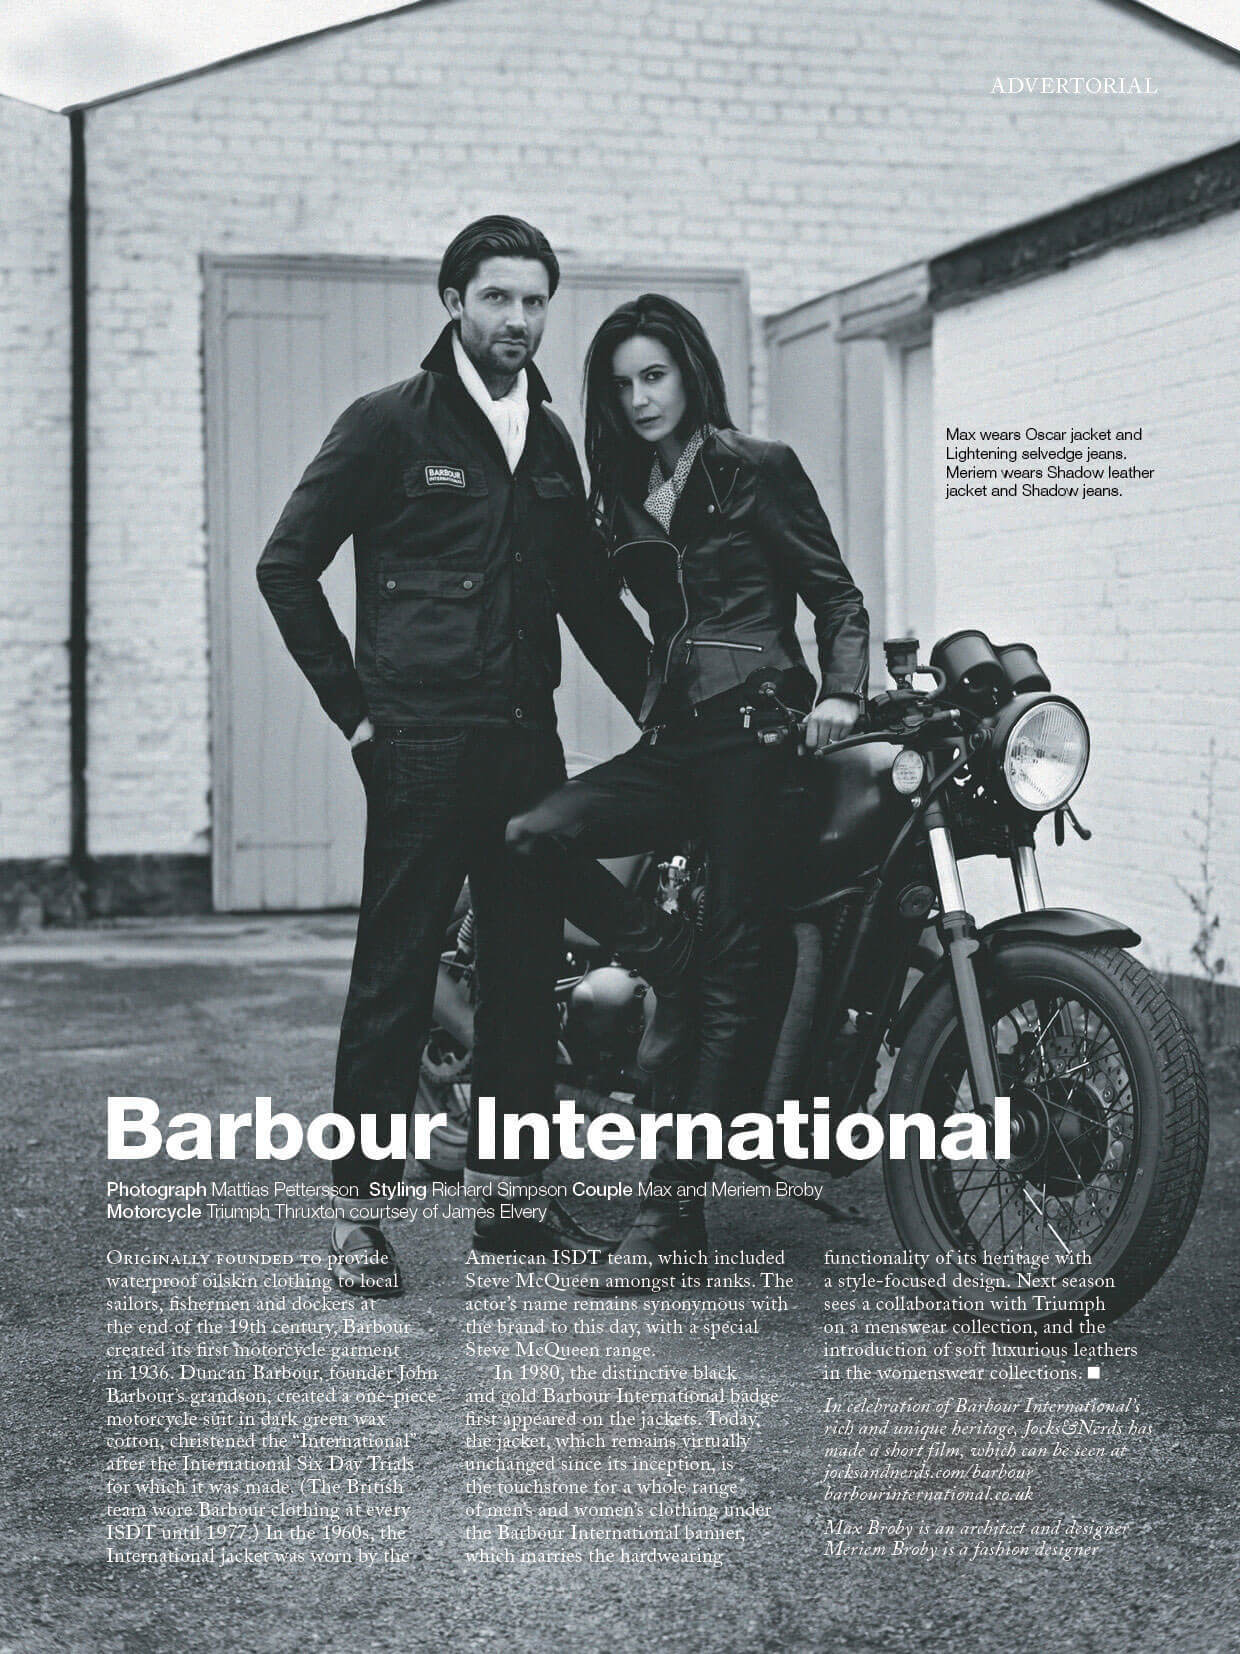 Tack-Studio-Creative-Agency-Barbour-International-Campaign-Biker-advertorial